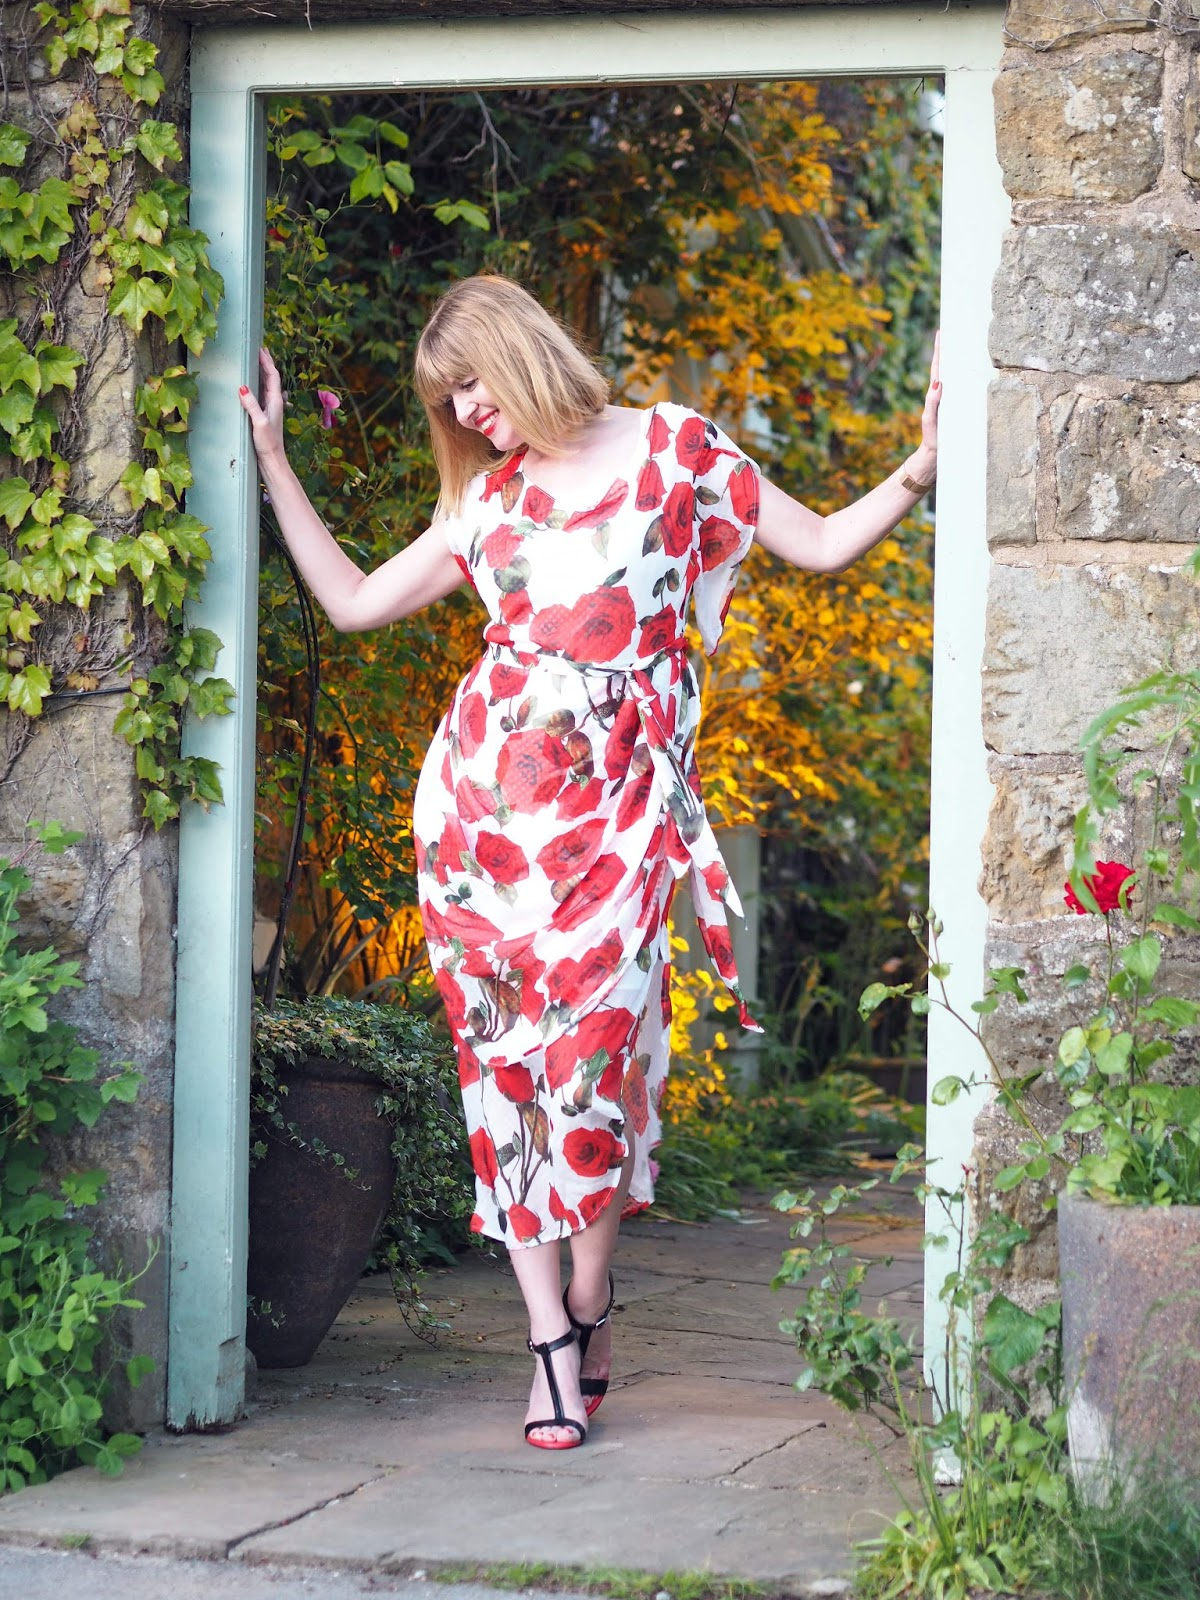 Alice's Pig White and red floral rose draped semi-fitted midi dress with red and black high-heeled sandals style over 40